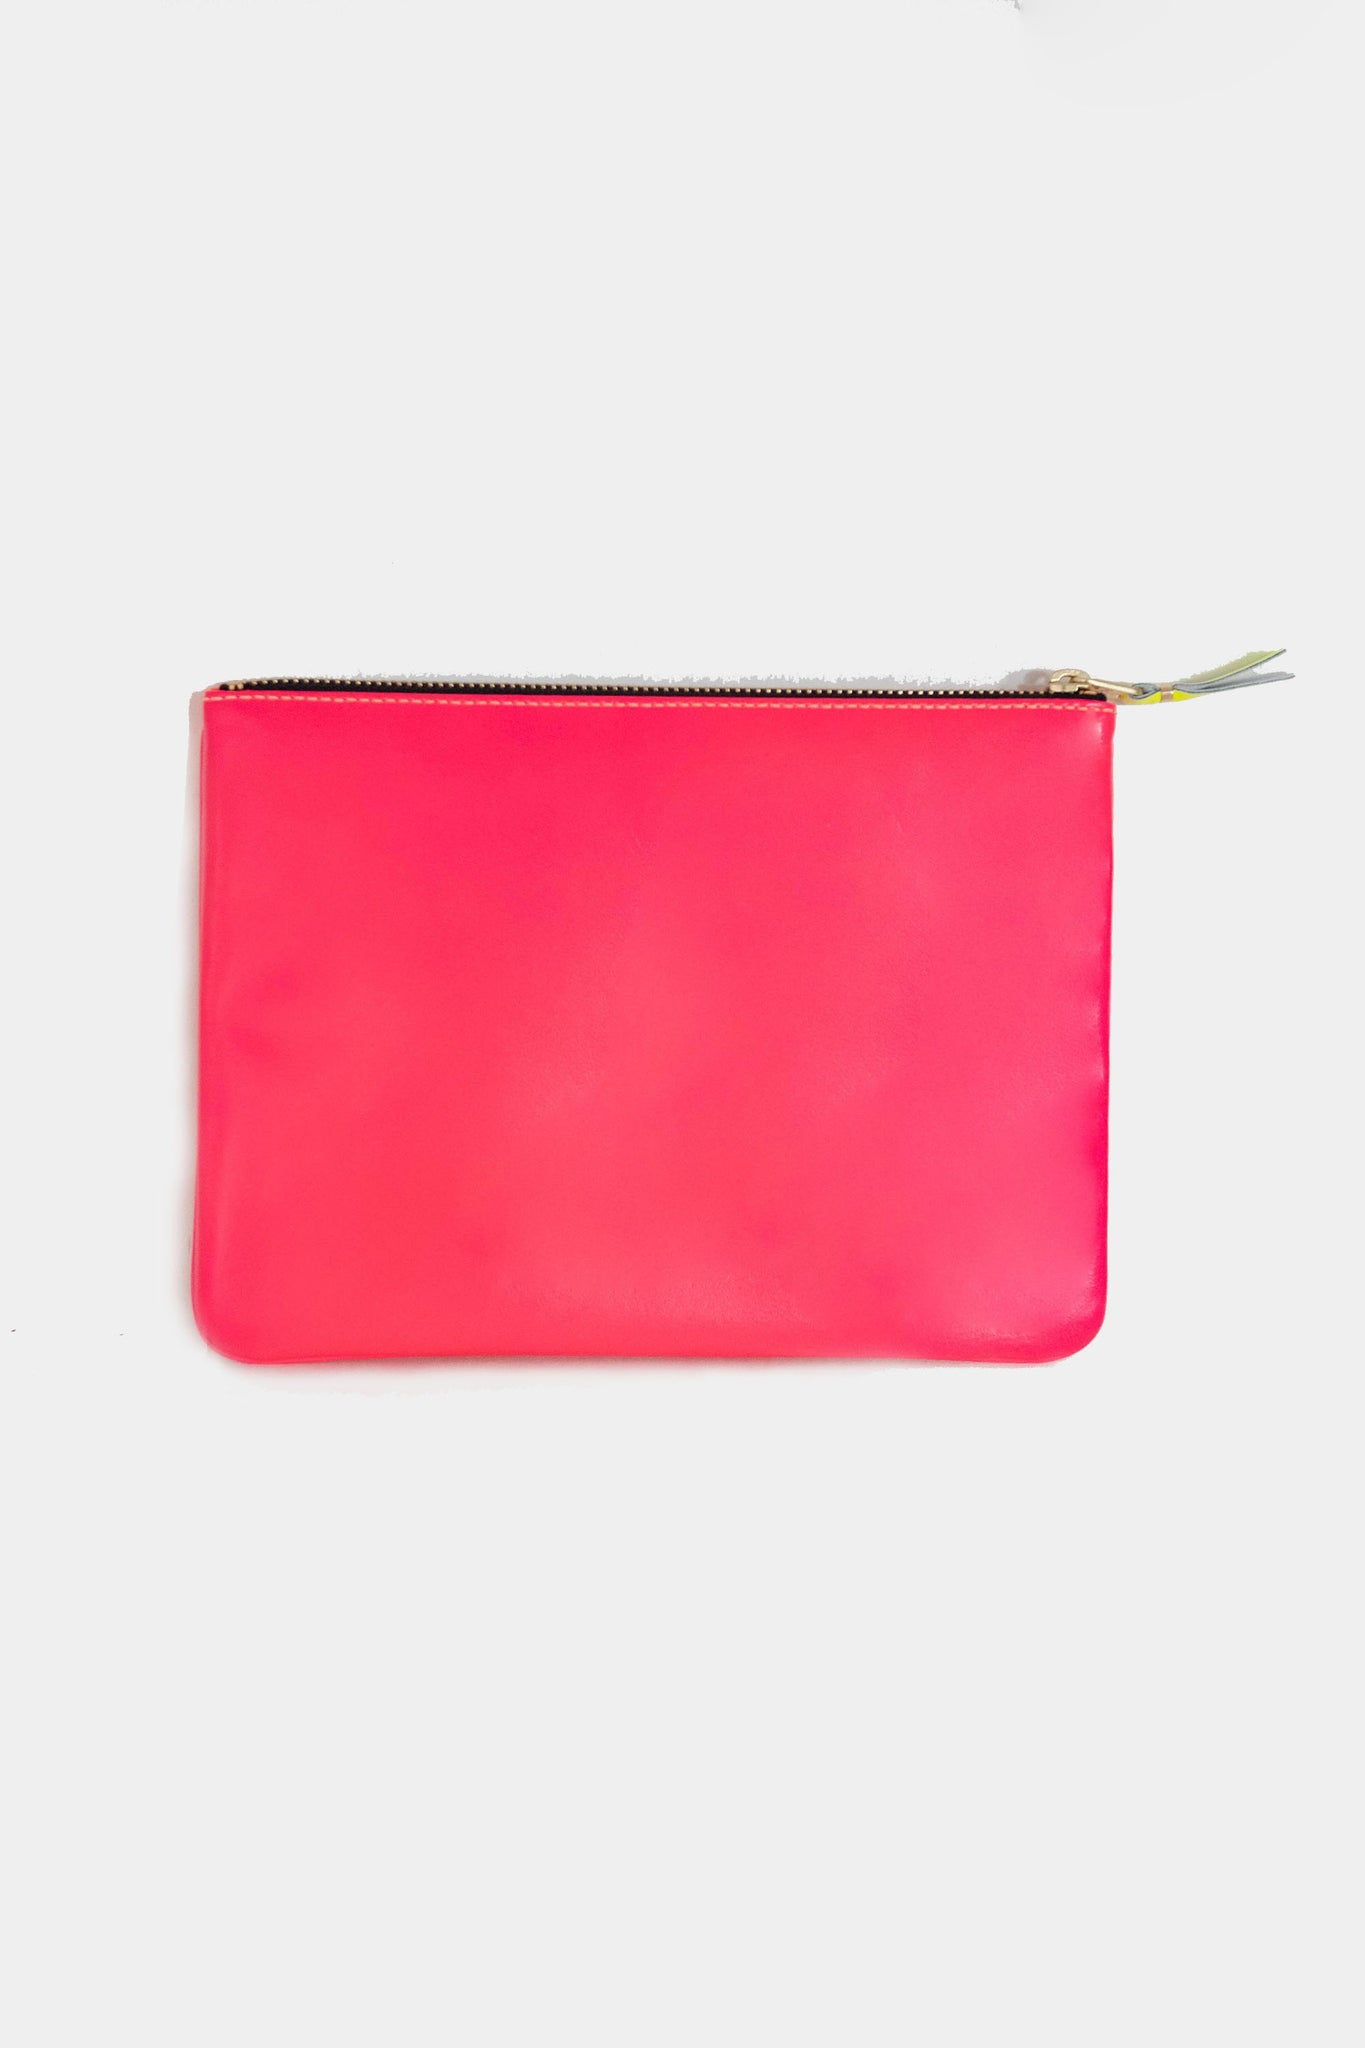 super fluo large pouch, orange and pink